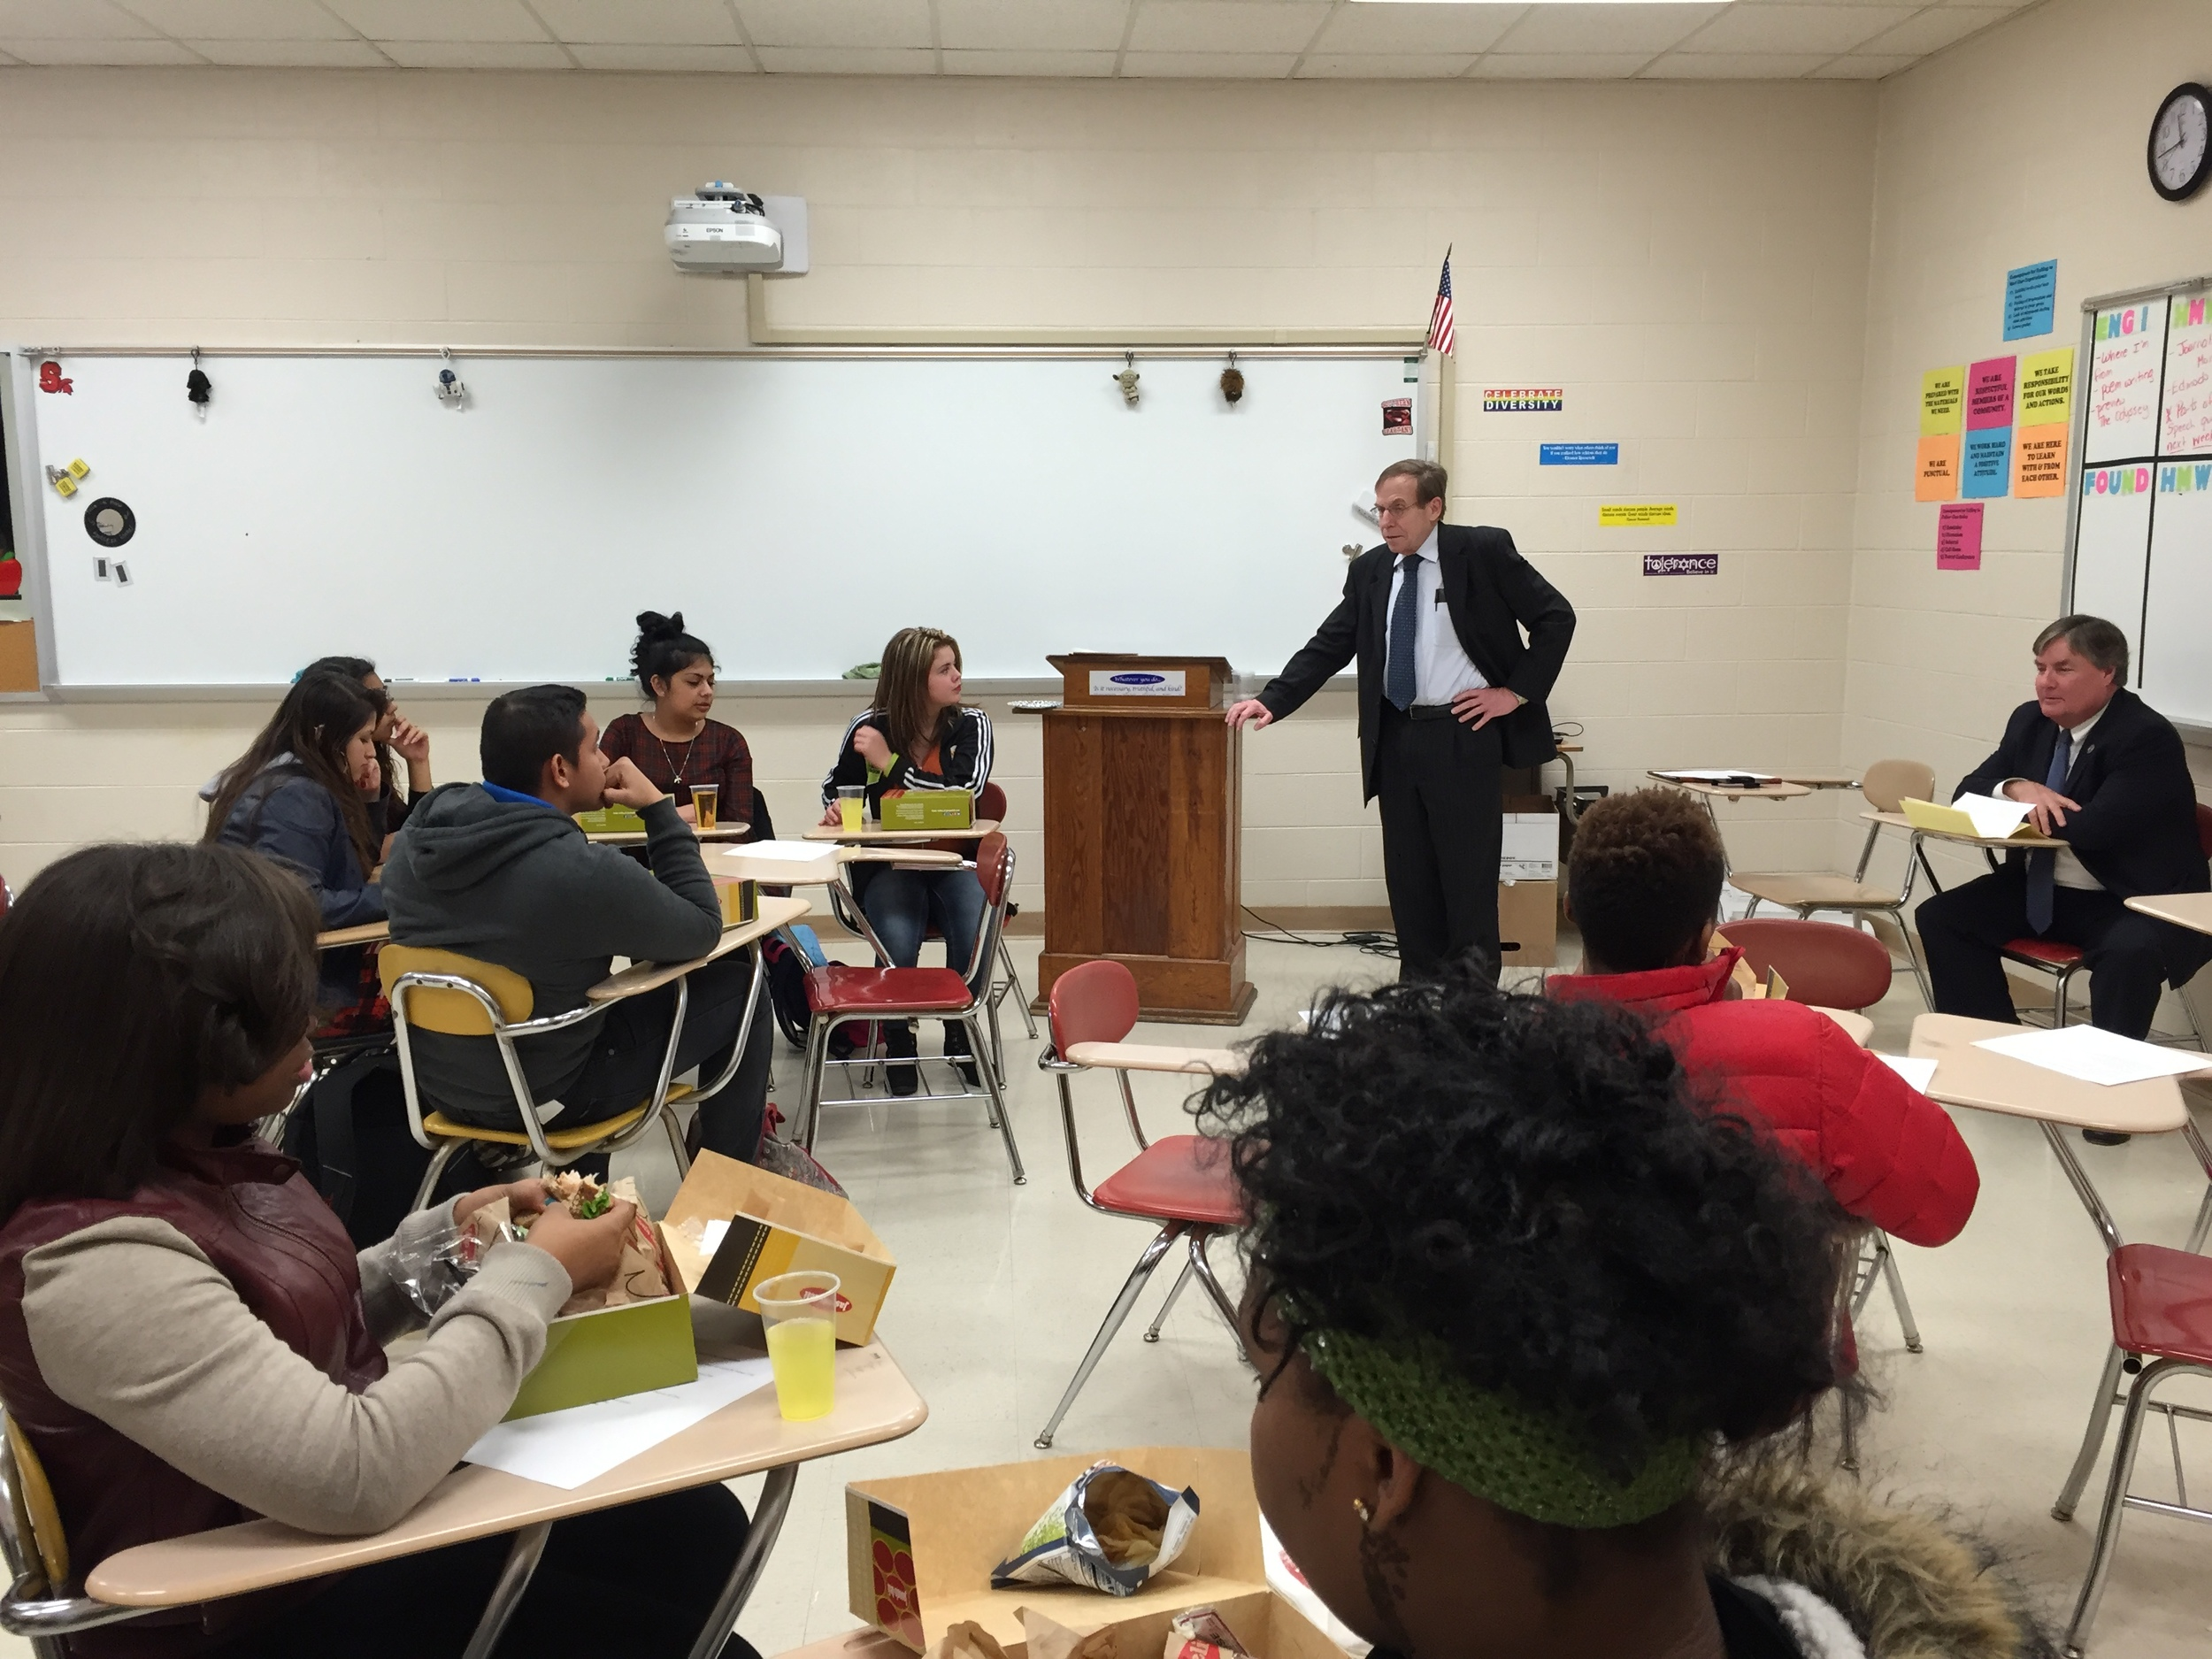 Discussing civics and leadership with students at Durham's Southern High School, 29 January 2016.